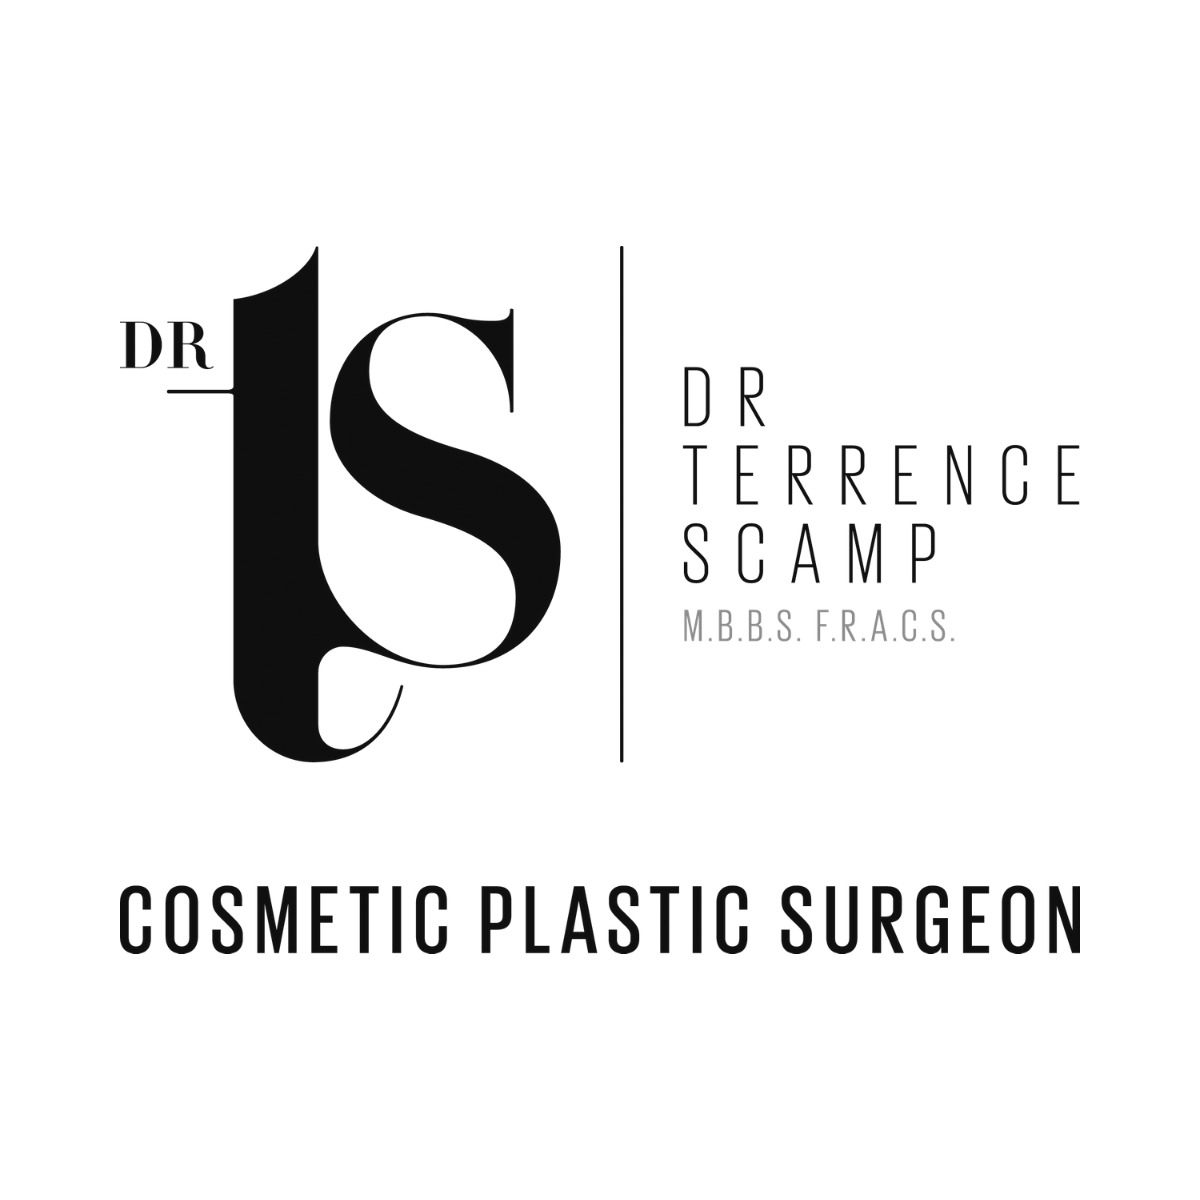 Dr Terrence Scamp logo